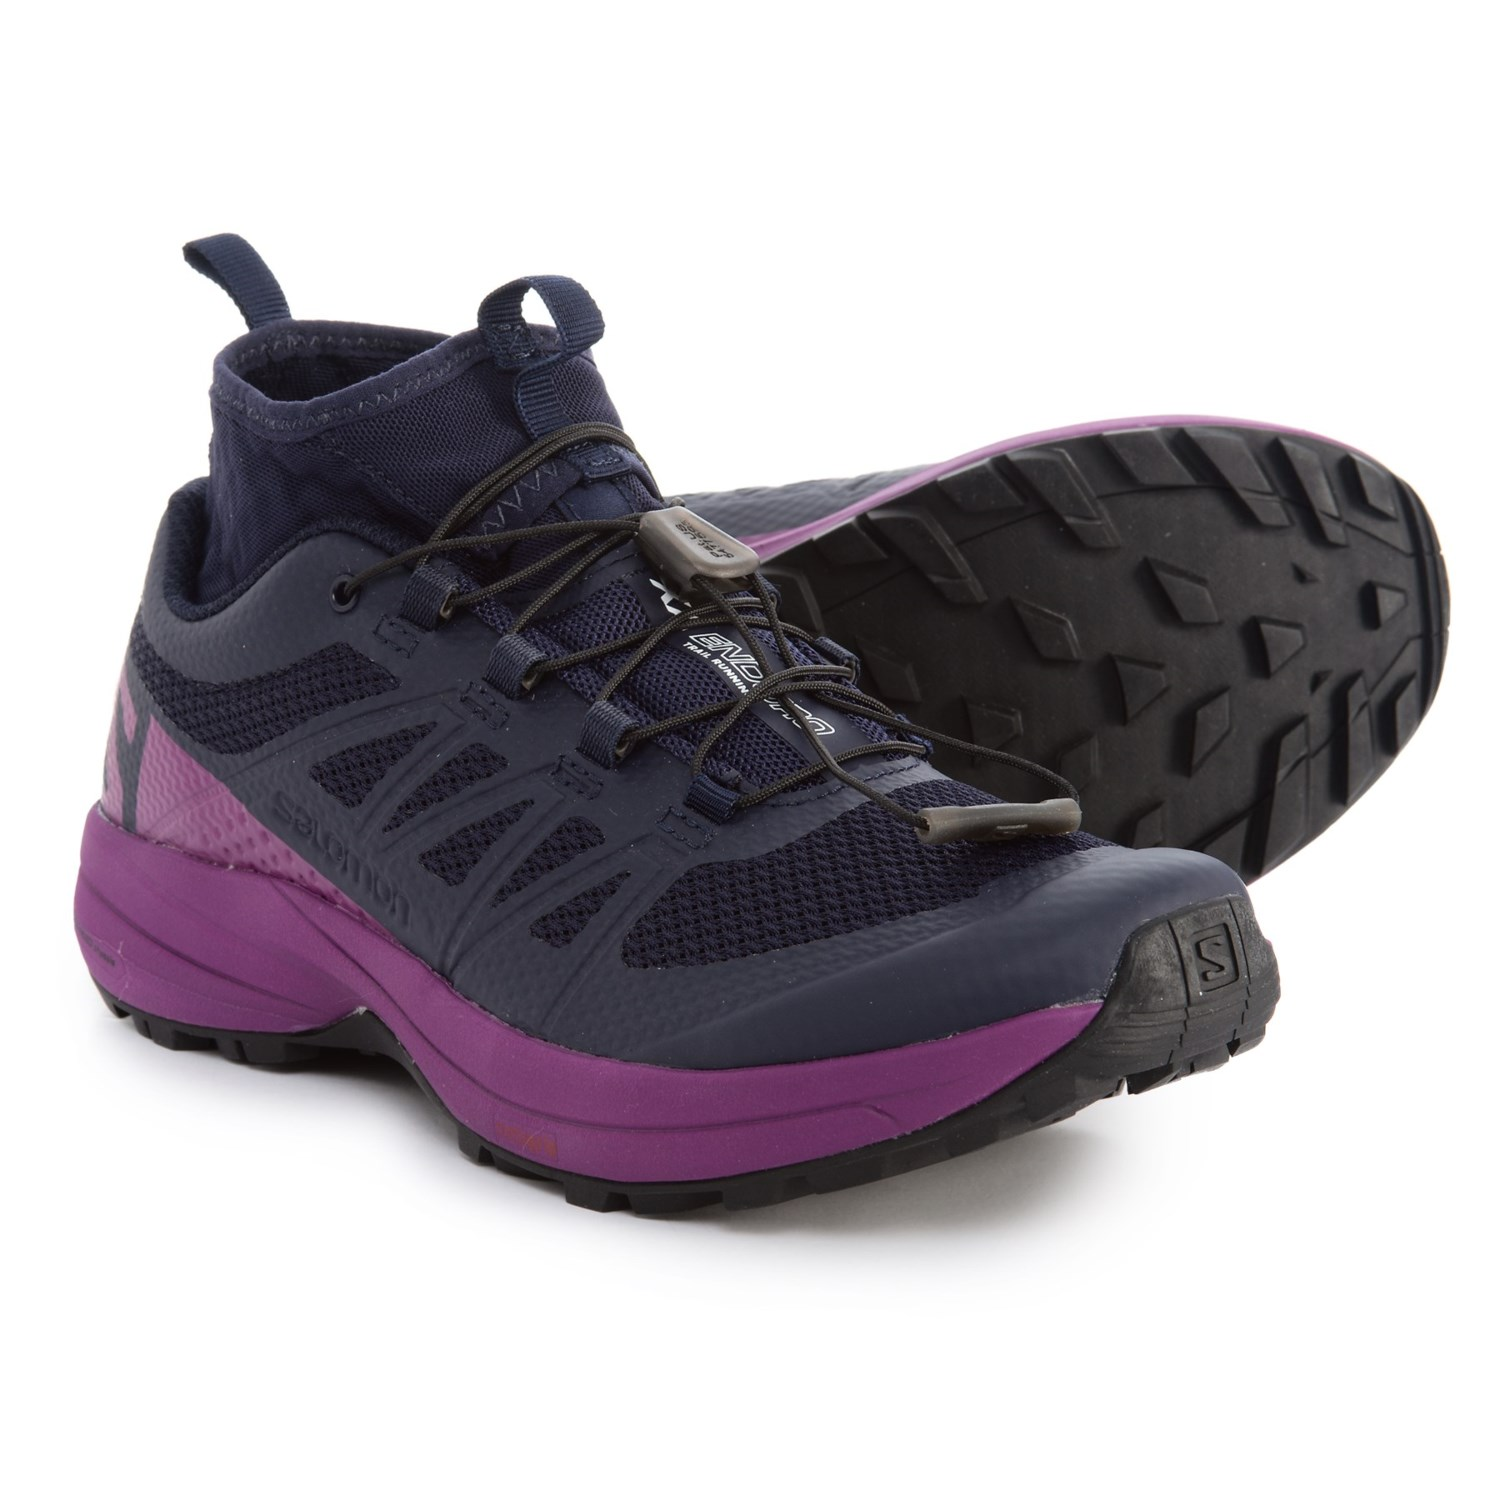 Salomon XA Enduro Trail Running Shoes (For Women)